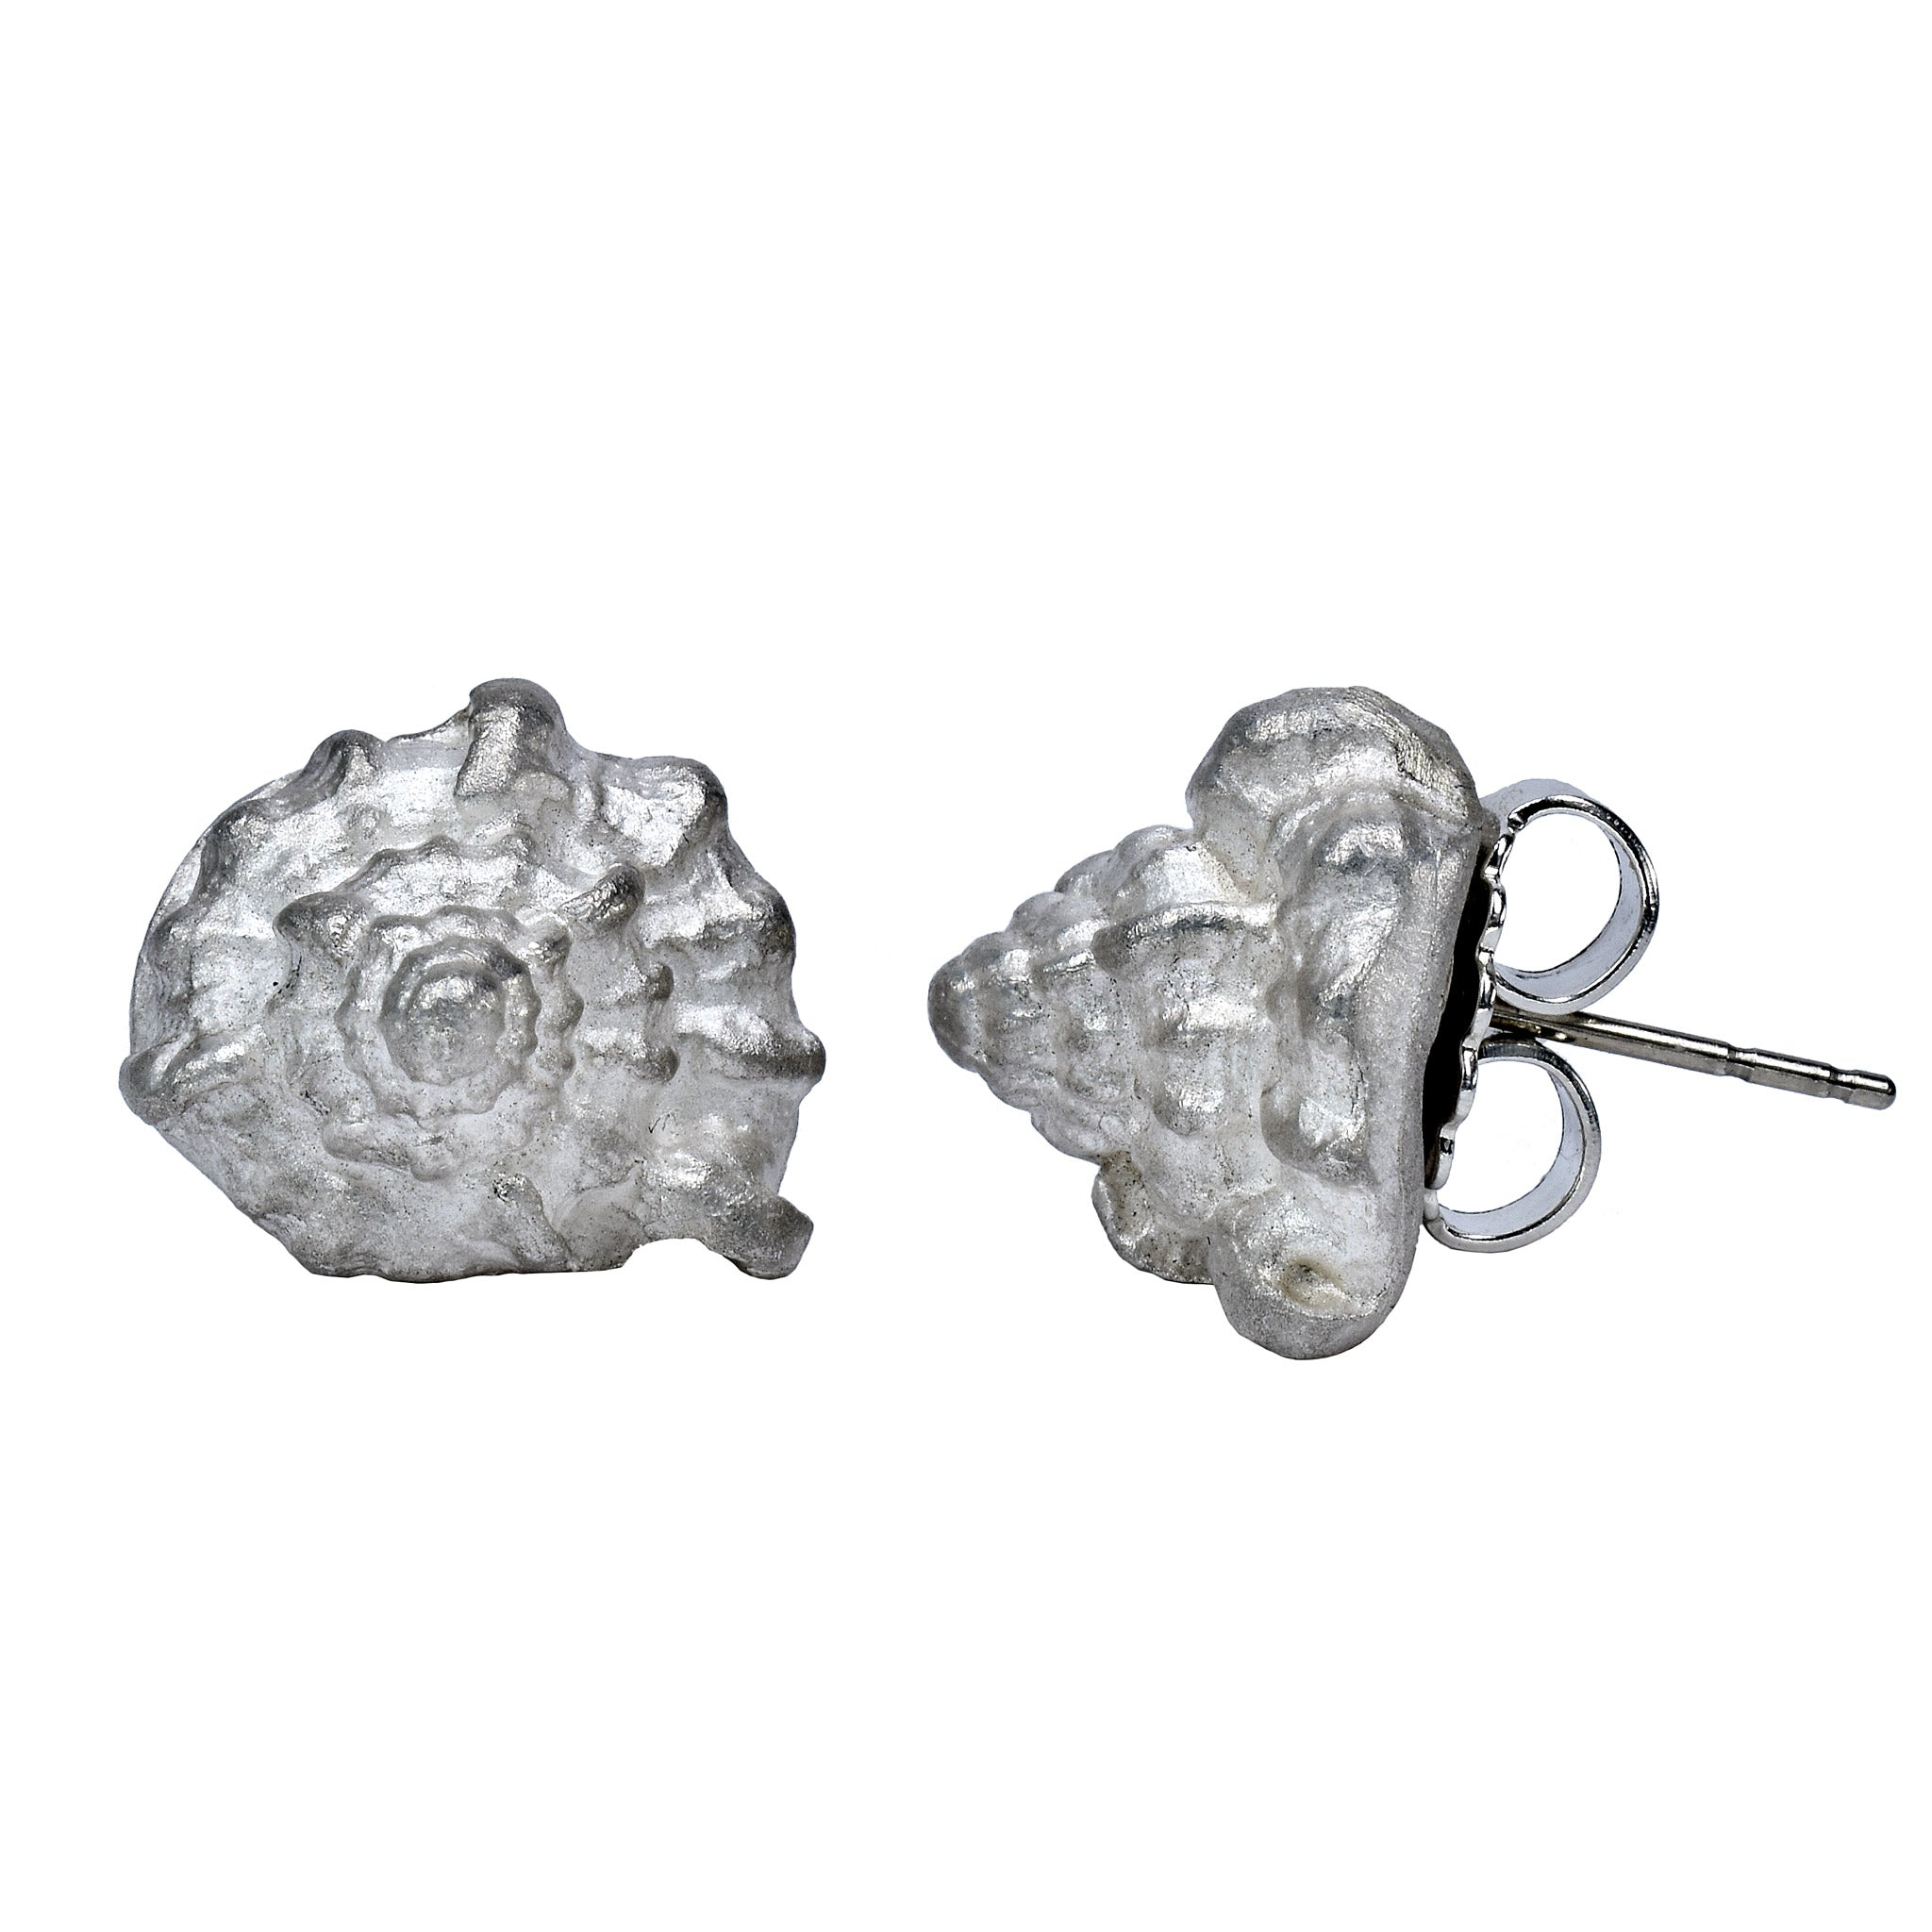 Seashell Earrings - Sterling Silver